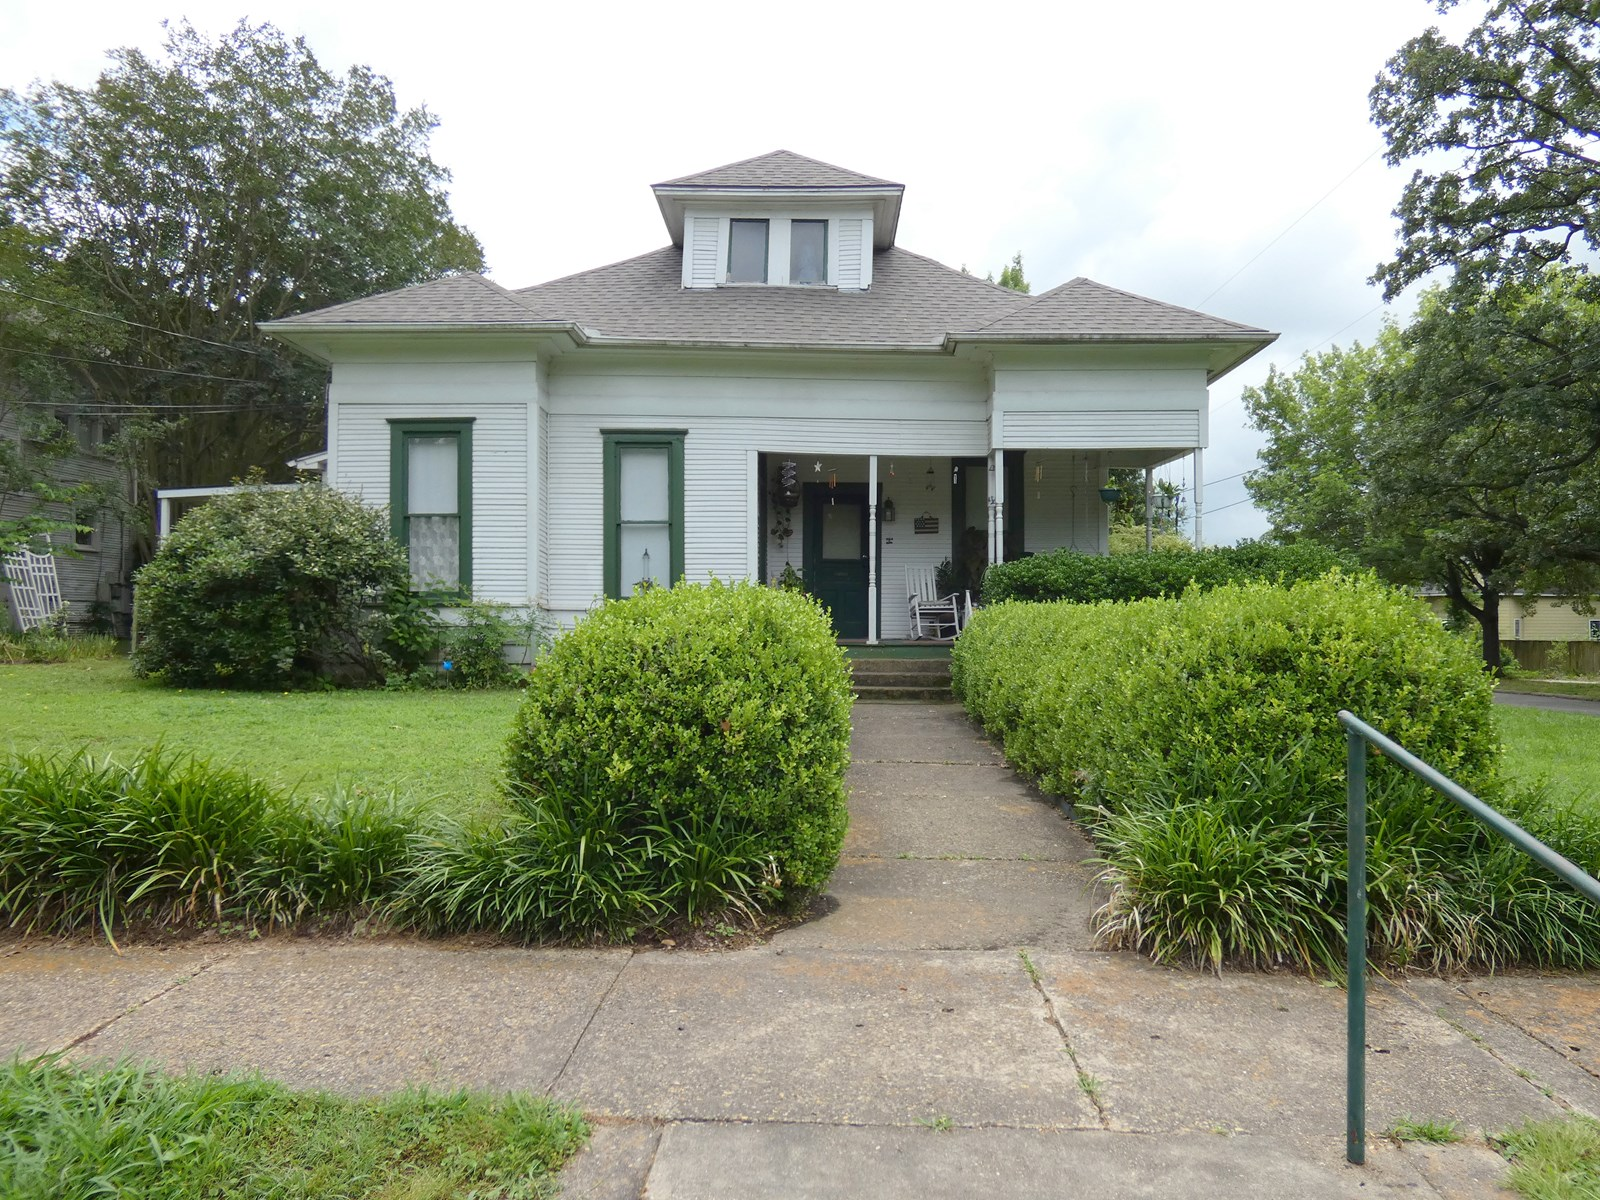 HISTORIC SEARS AND ROEBUCK HOME FOR SALE IN EAST TEXAS